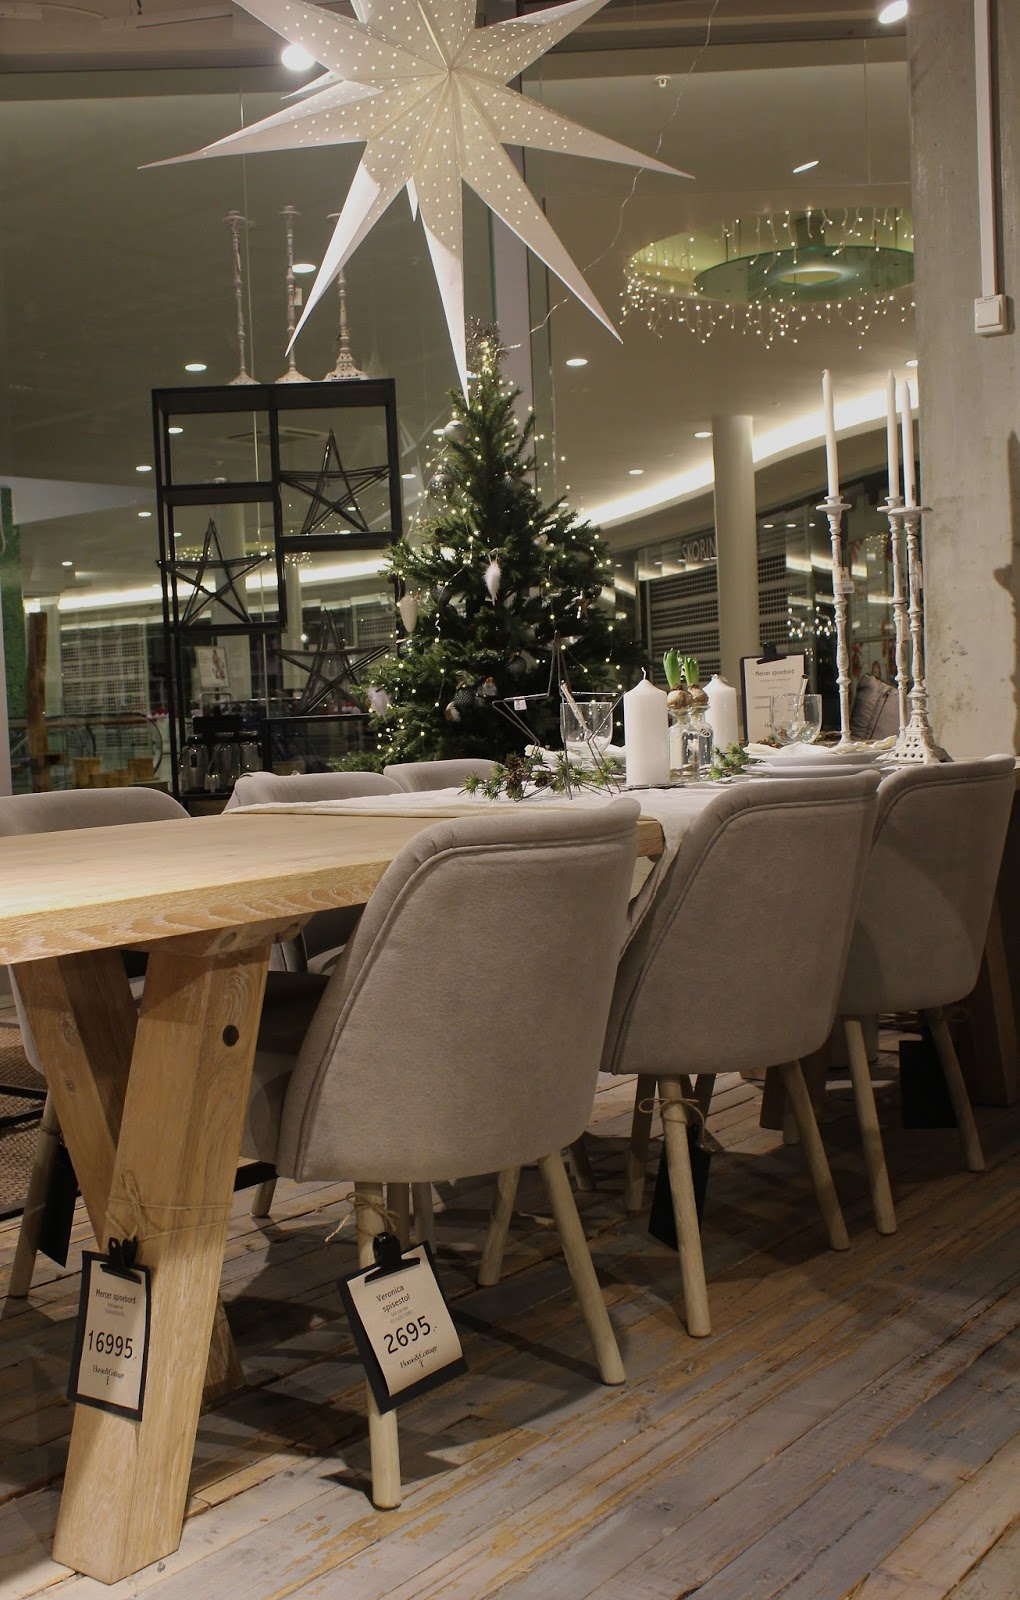 Blogg Home and Cottage: desember 2015